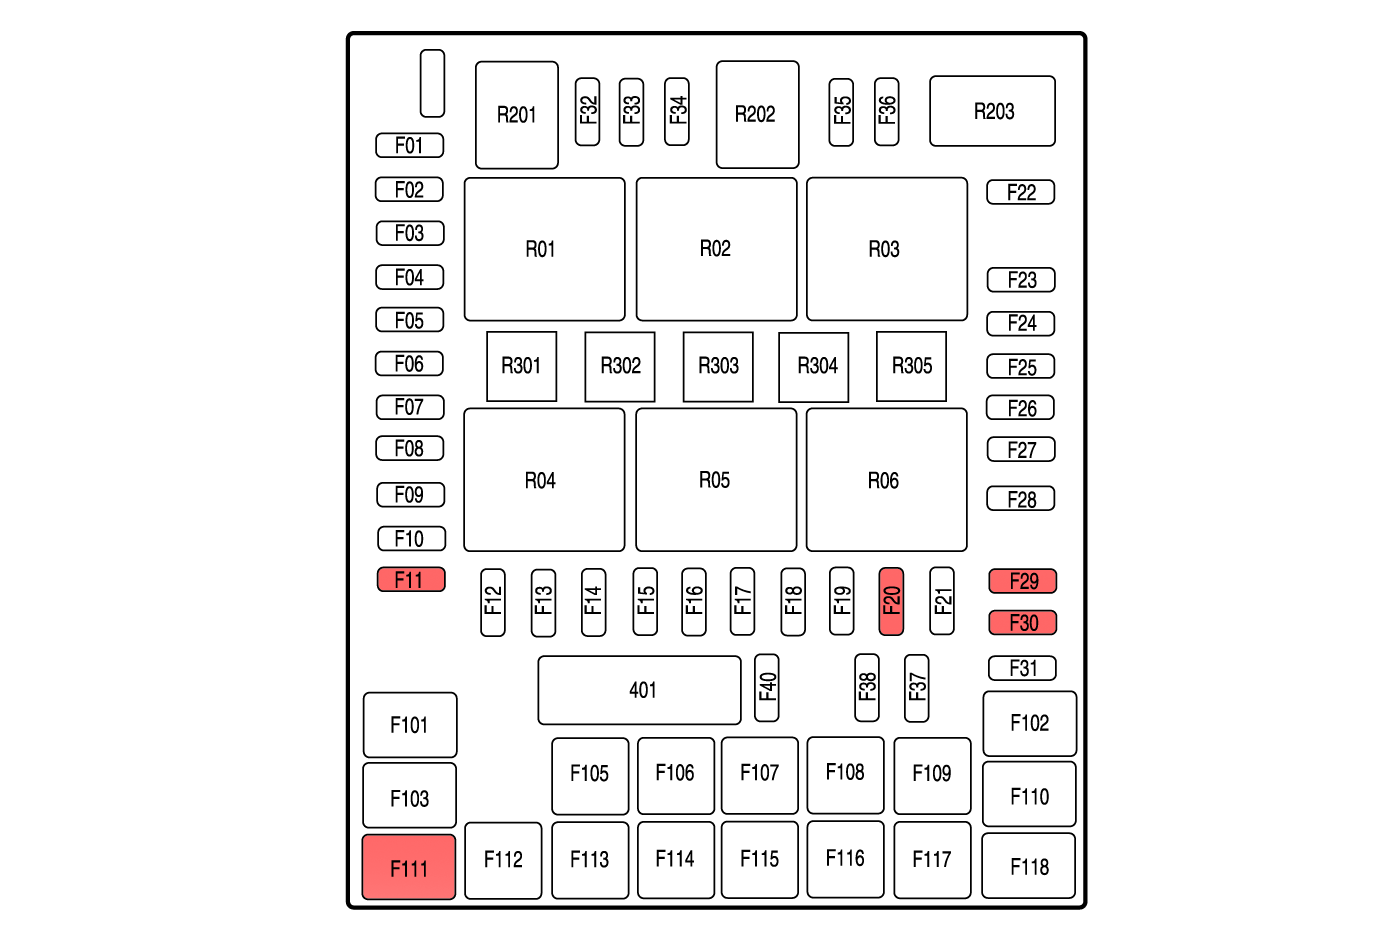 hight resolution of 2008 f 150 fuse diagram wiring diagram sheet 2004 ford f150 fuse box location 2004 f 150 fuse box